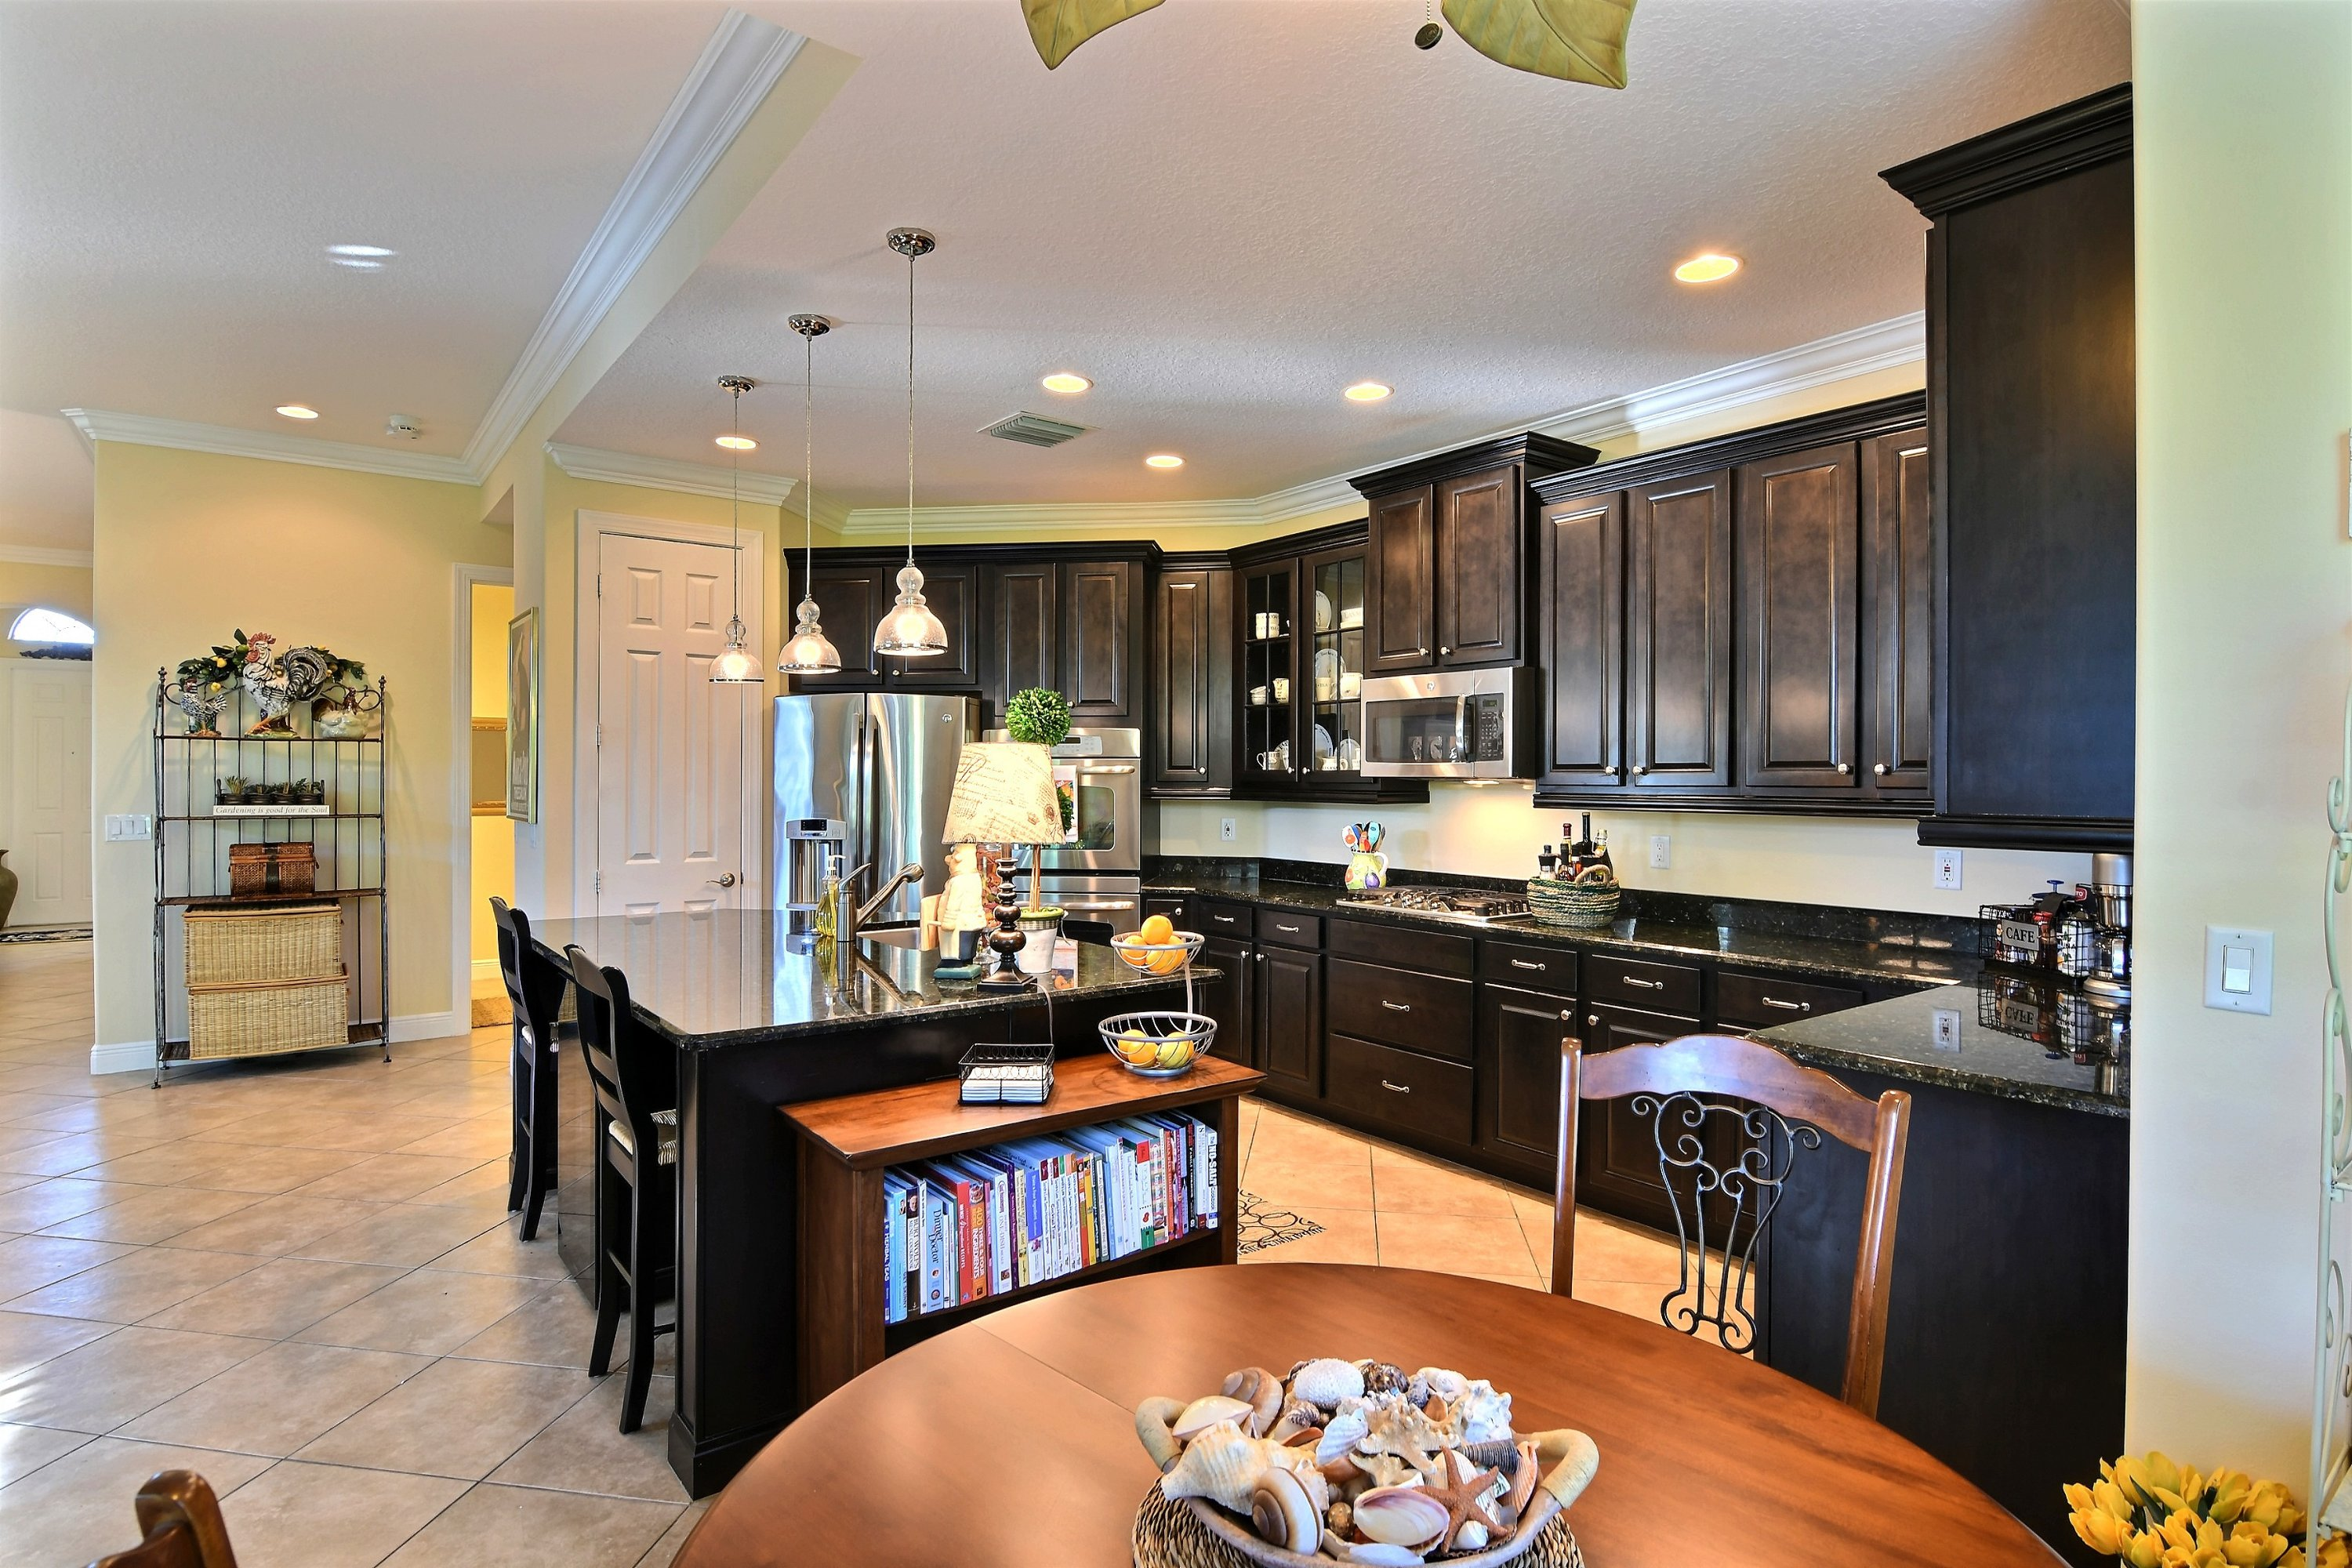 Newer Vero Beach Home With Cooks Kitchen Near The Beach